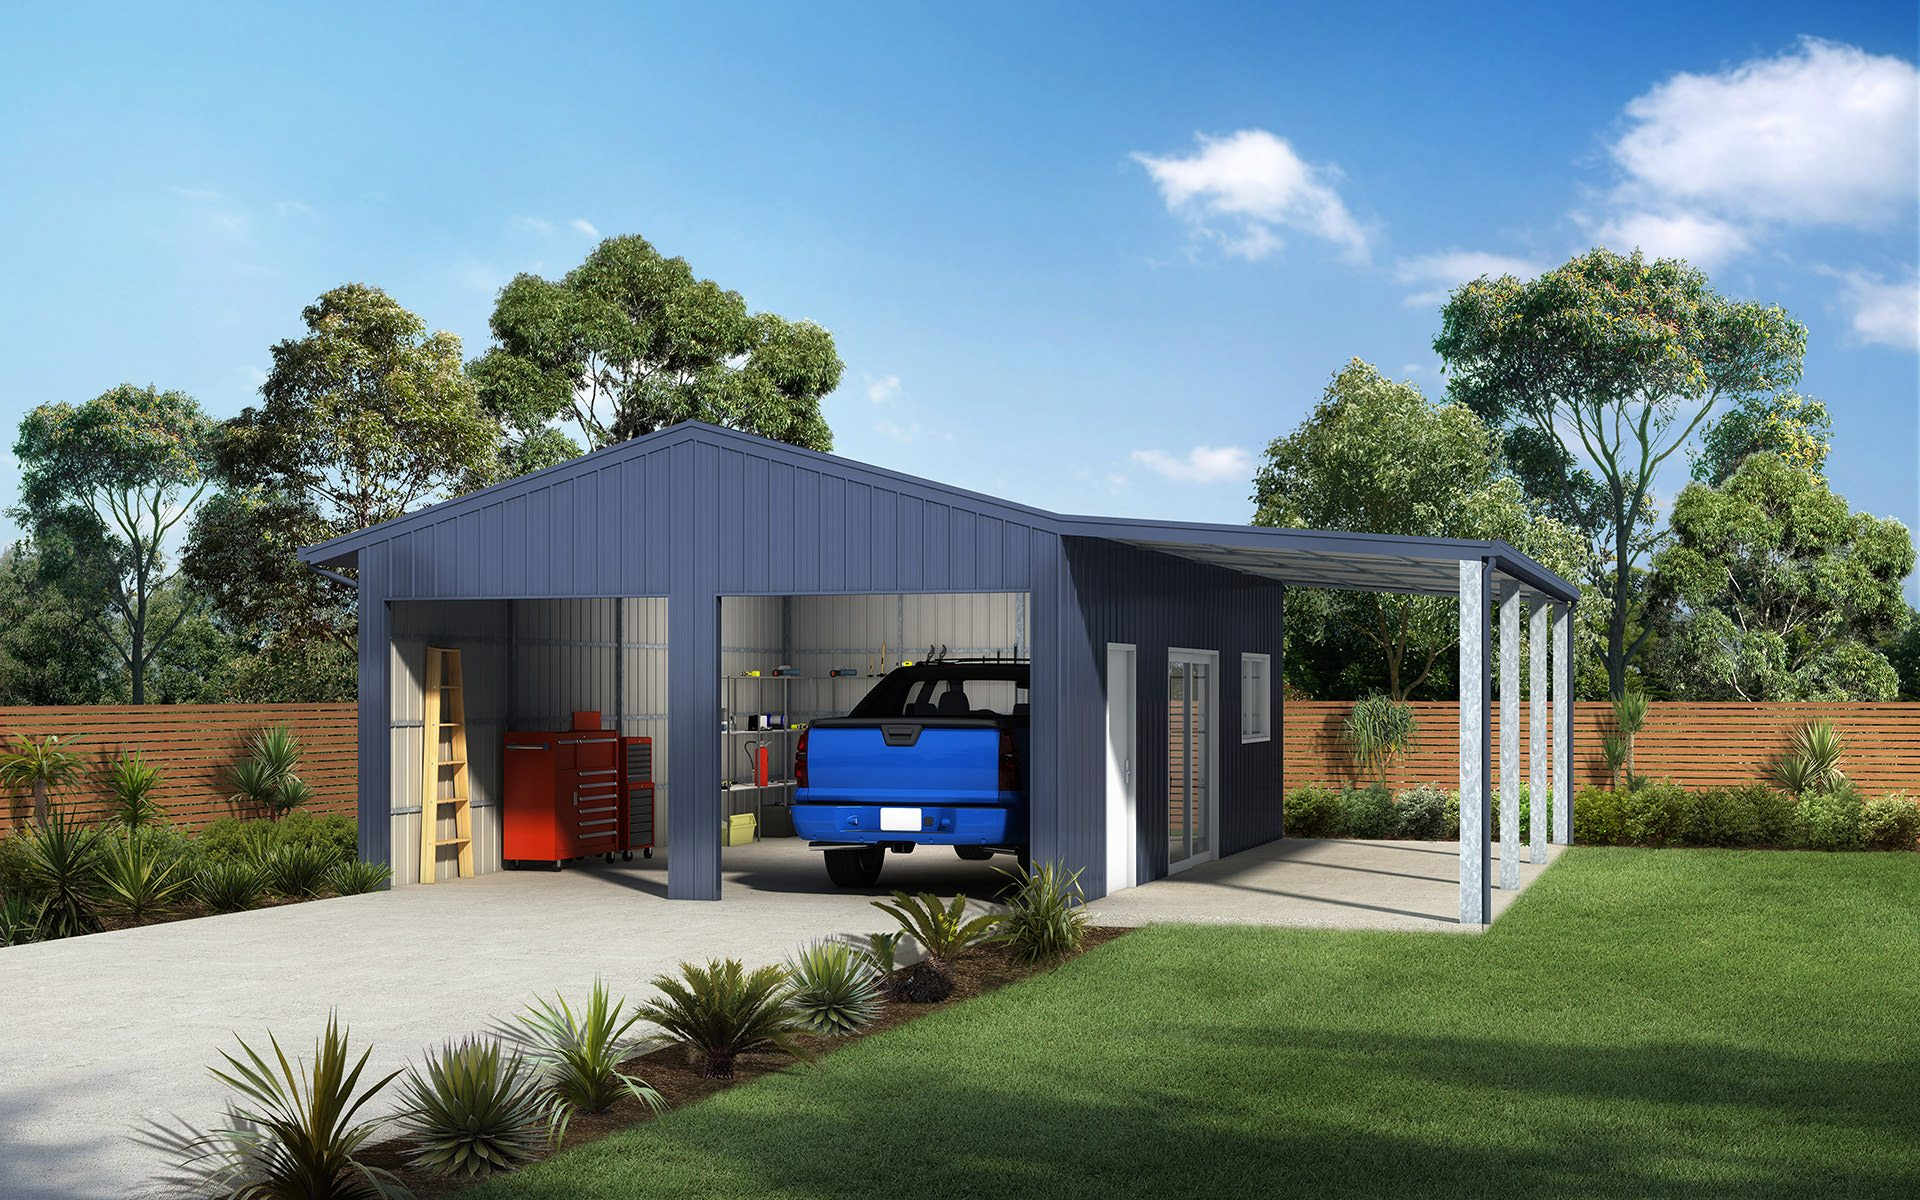 Garage Awning Extension Double Garages And Sheds For Sale Ranbuild